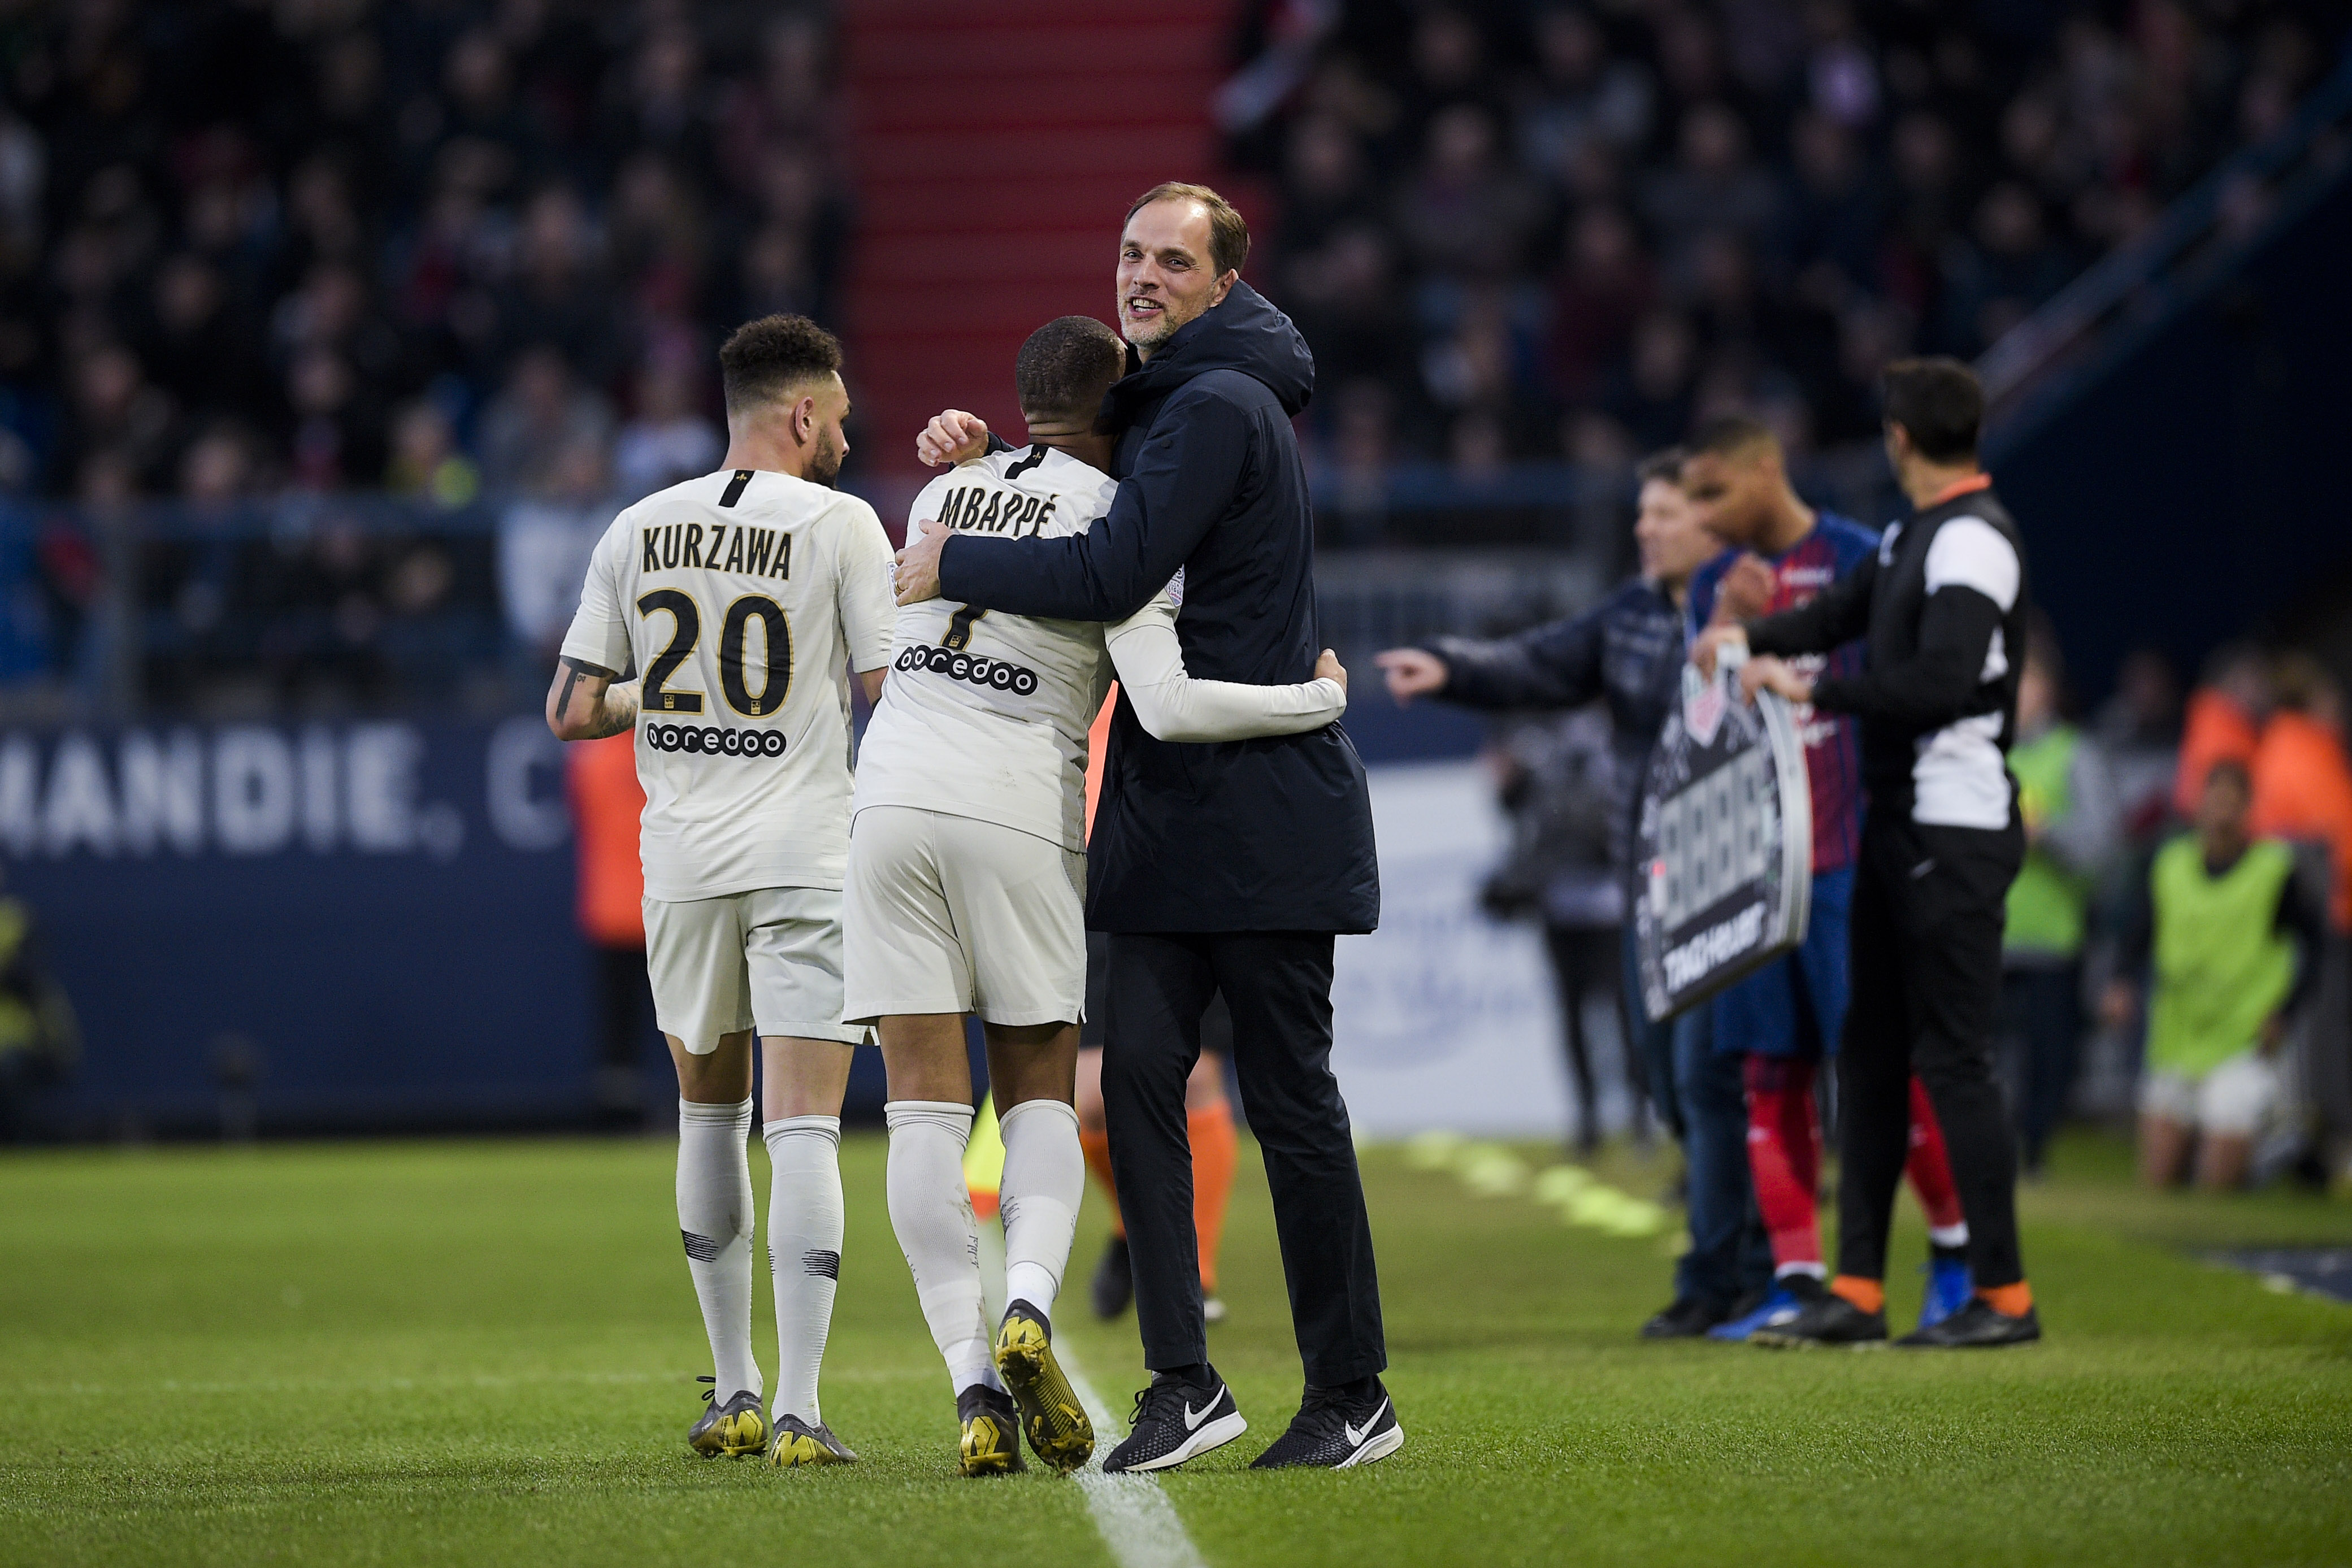 Football - Ligue des champions - Thomas Tuchel, la psychologie au service du PSG